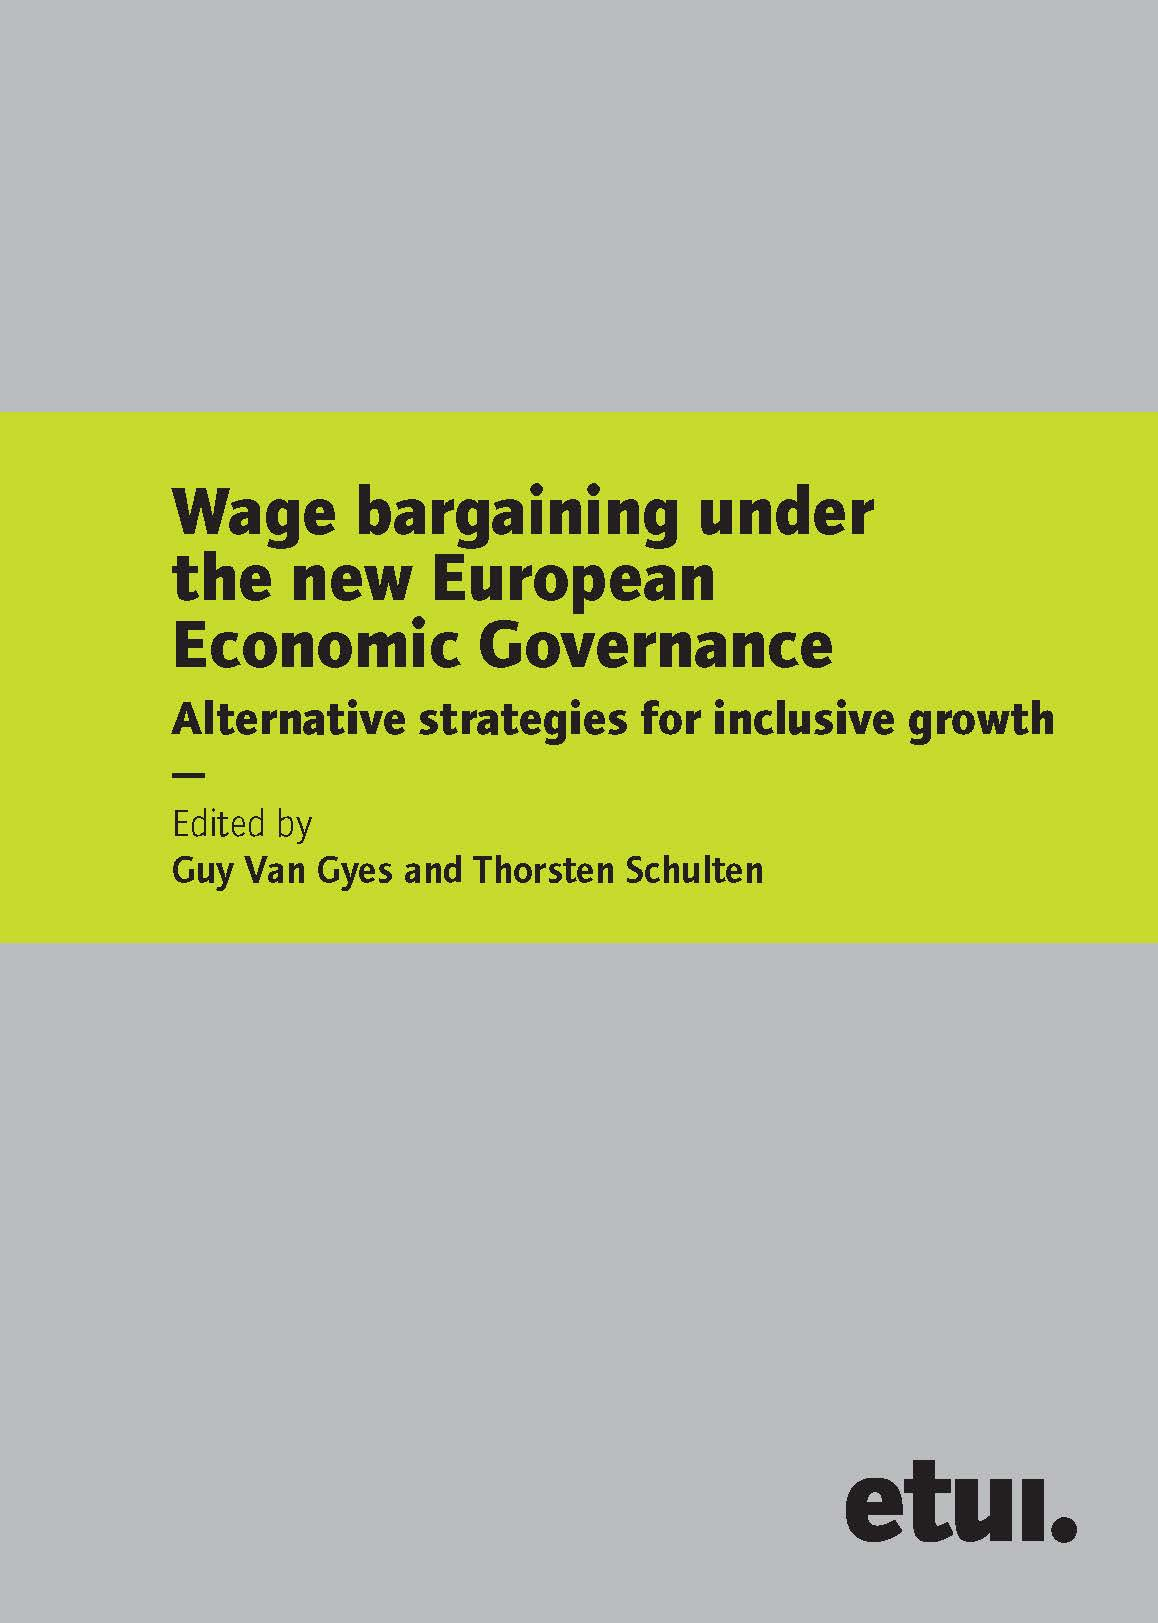 New articles on wage bargaining